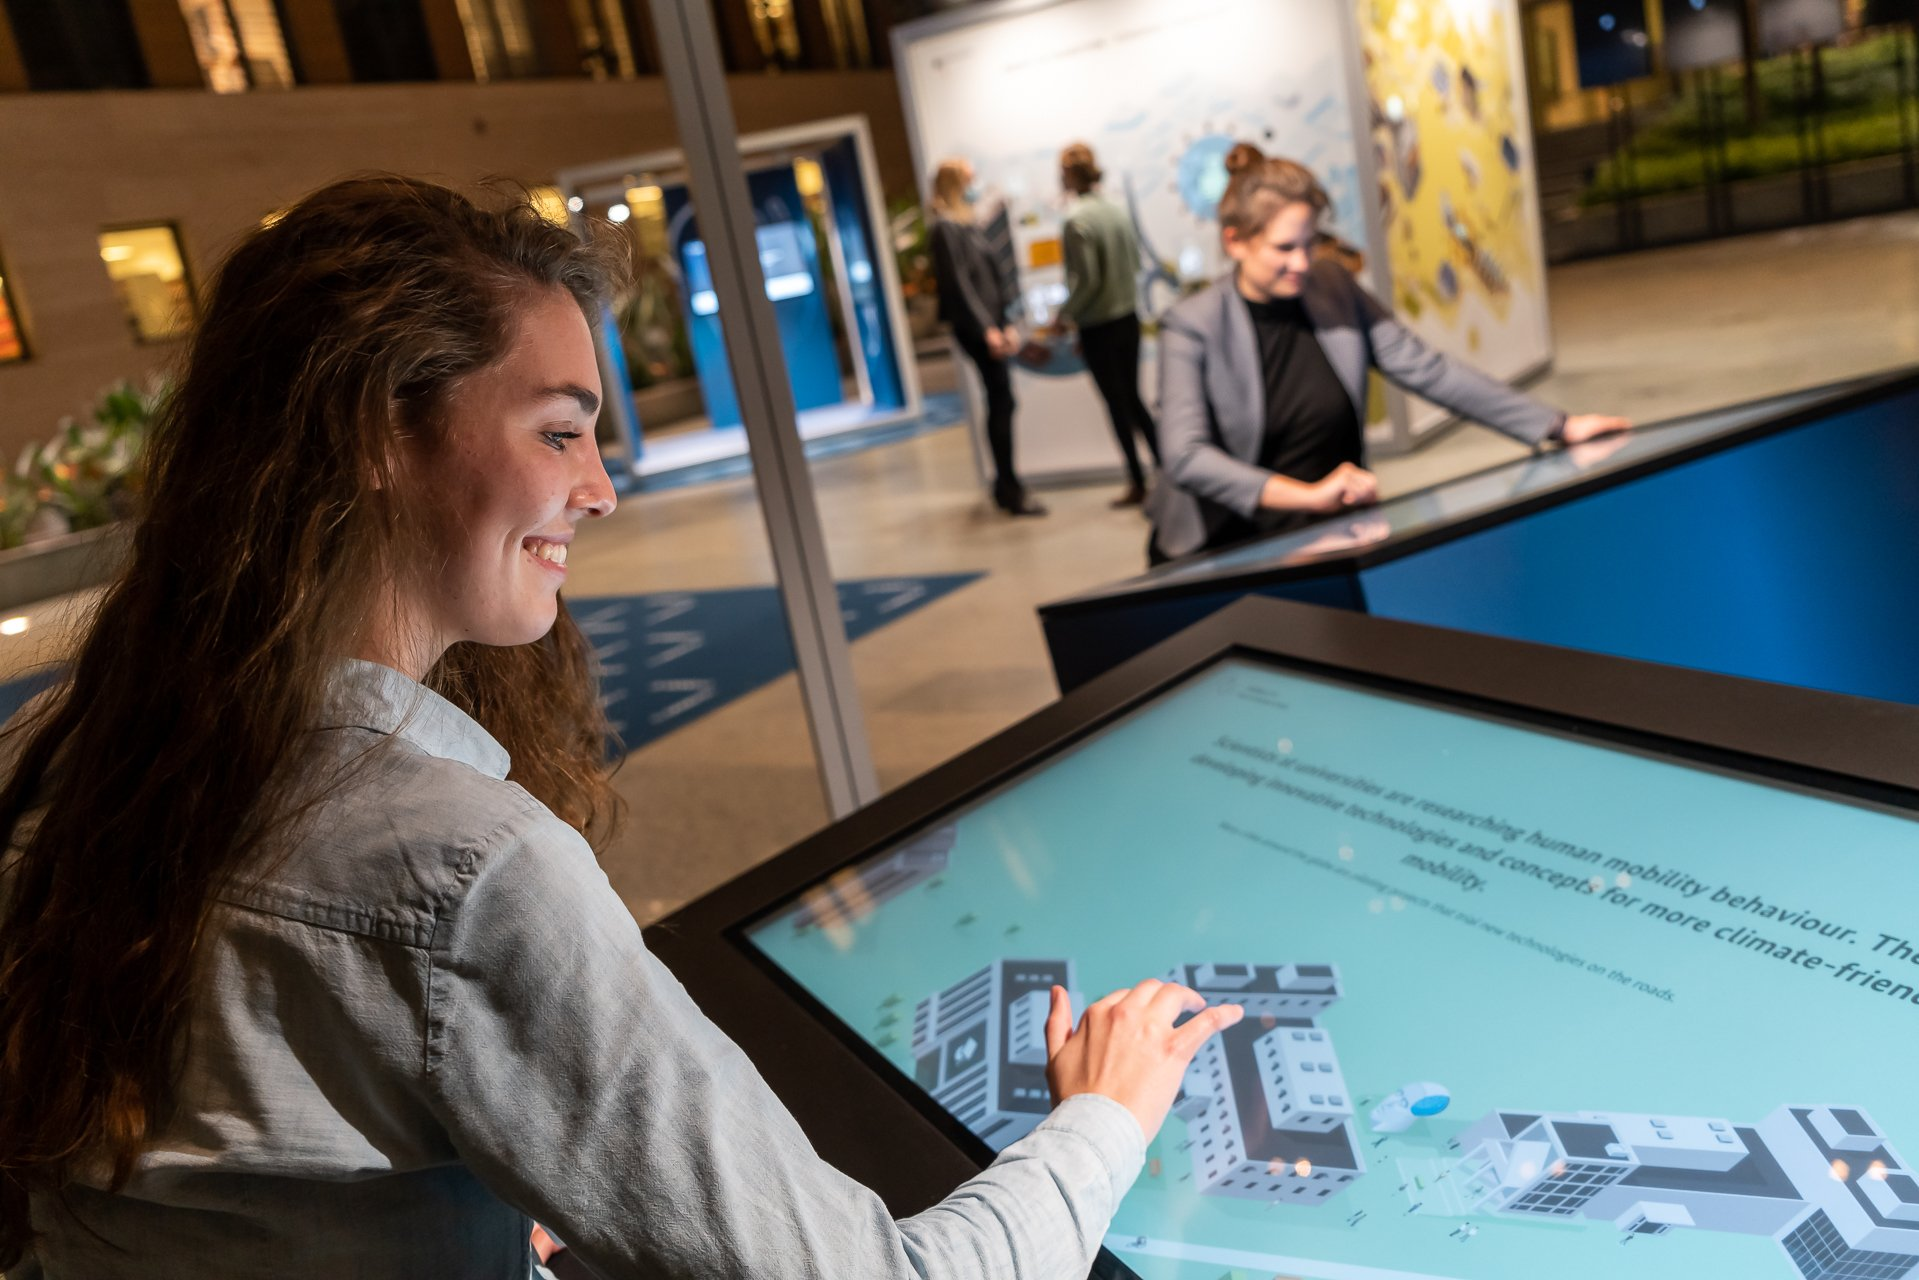 A woman visiting the travelling exhibition is sitting at a monitor at the Mobility station and is viewing the content of the science perspective.